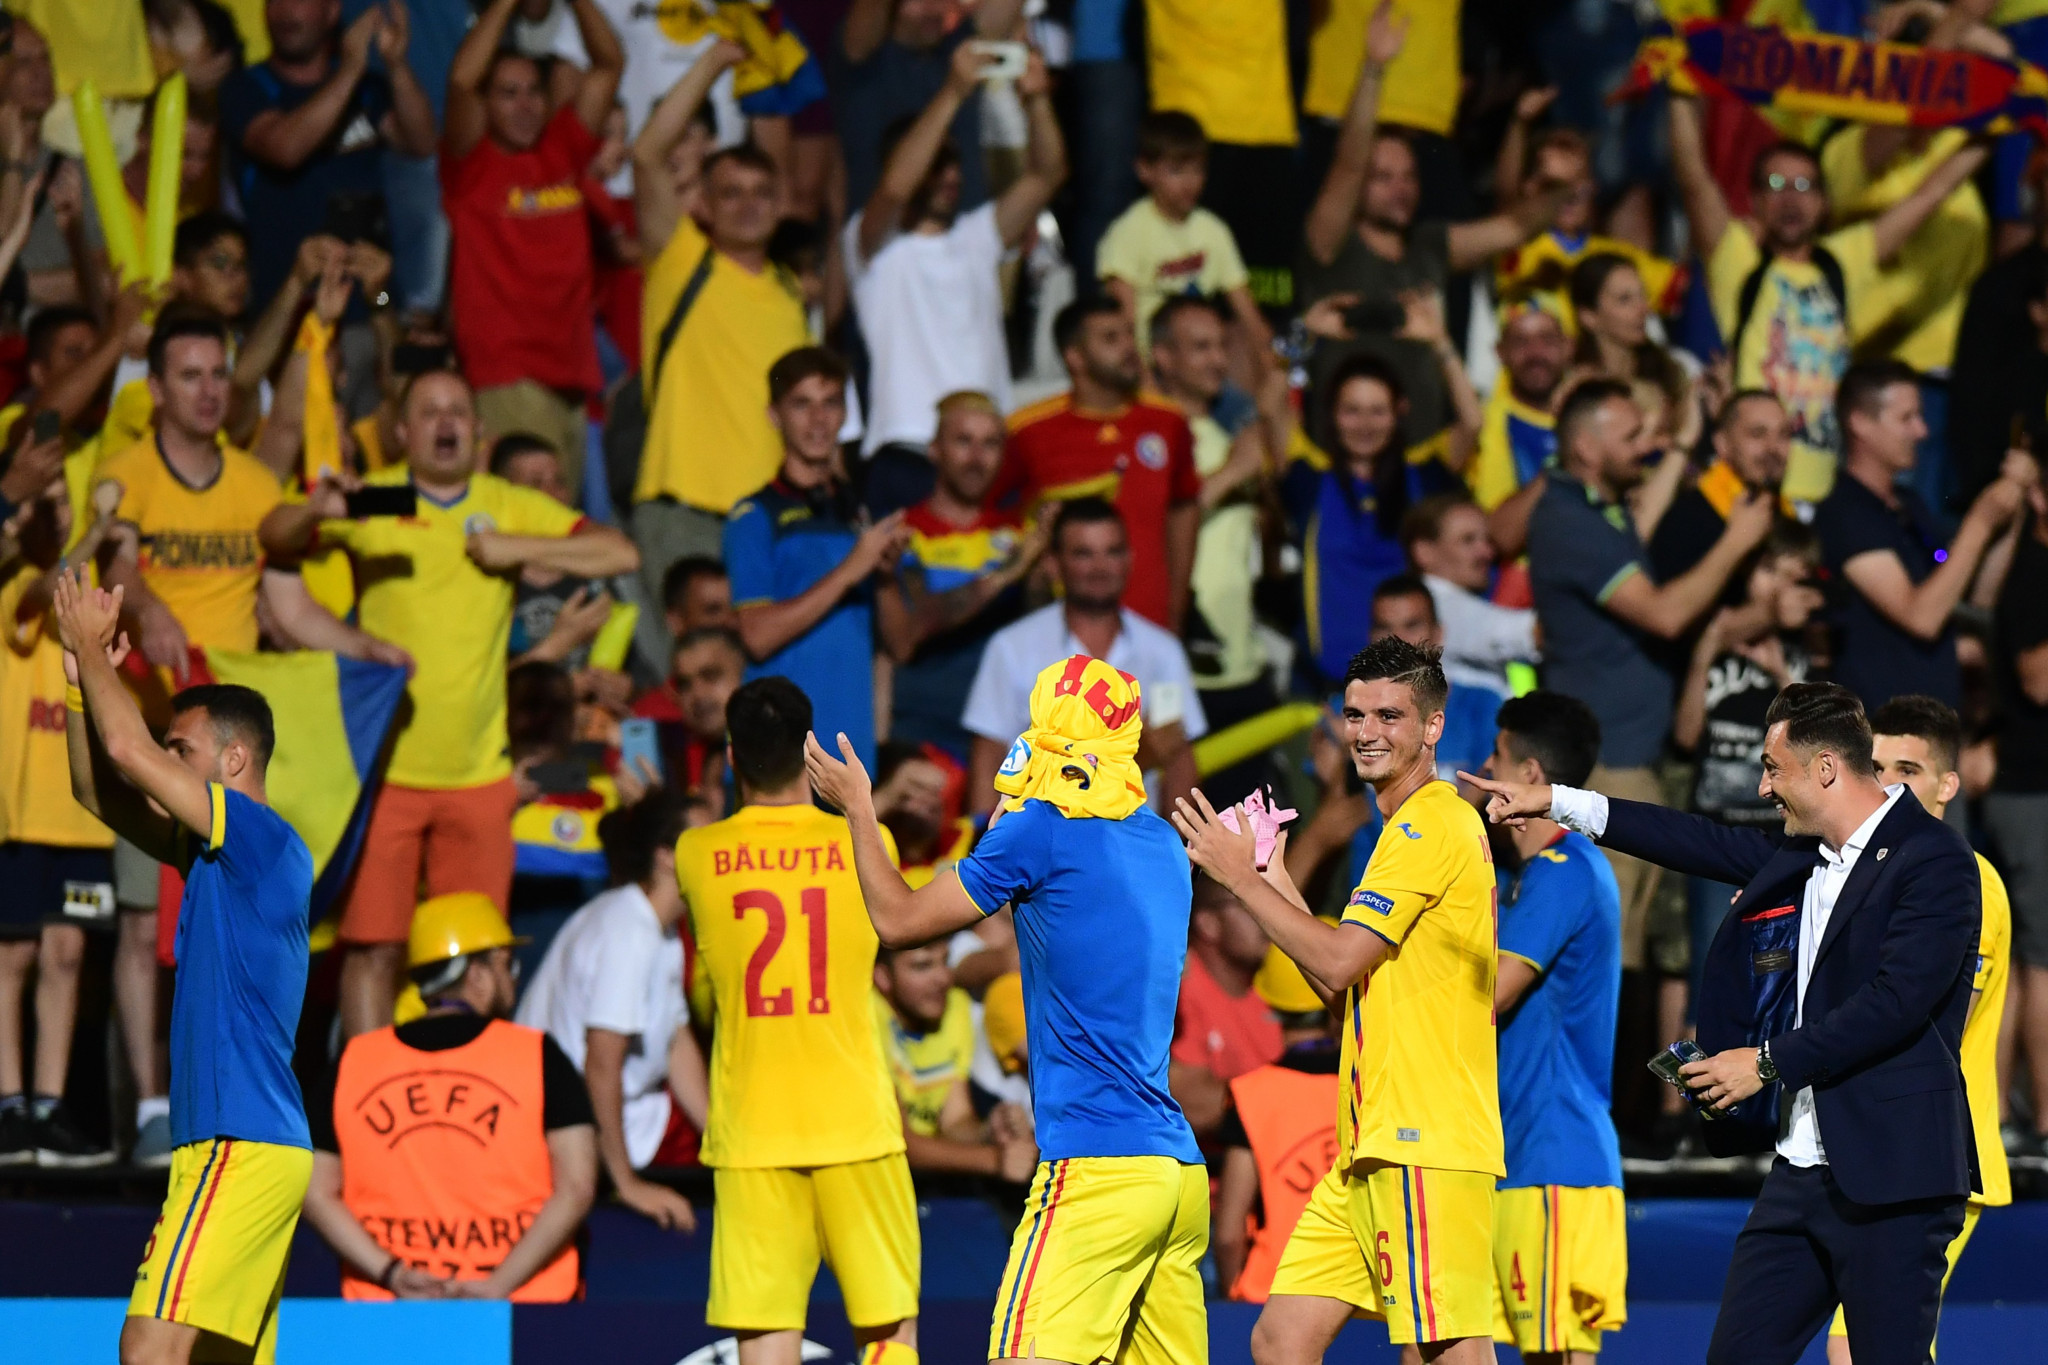 France and Romania reach Tokyo 2020 after goalless draw at UEFA European Under-21 Championships clinches semi-final spots